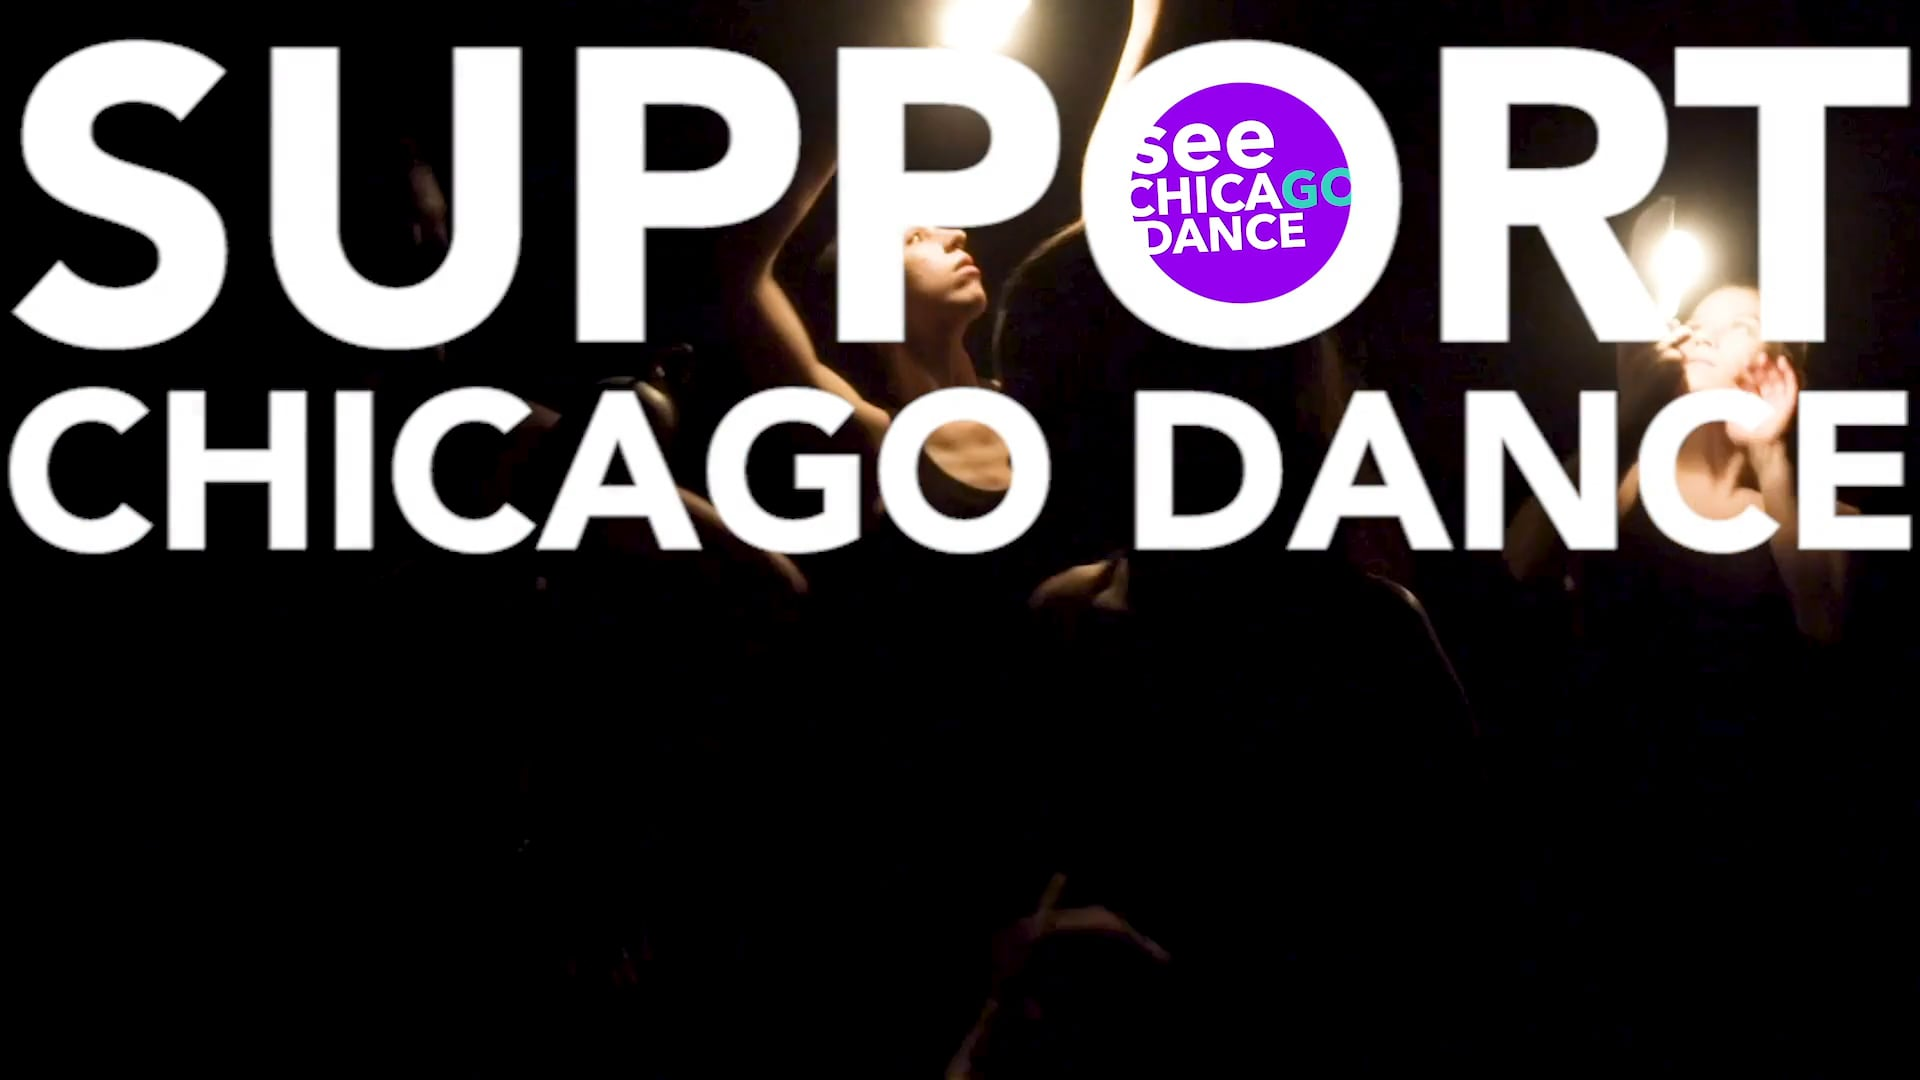 See Chicago Dance: Connected and Community-Forward